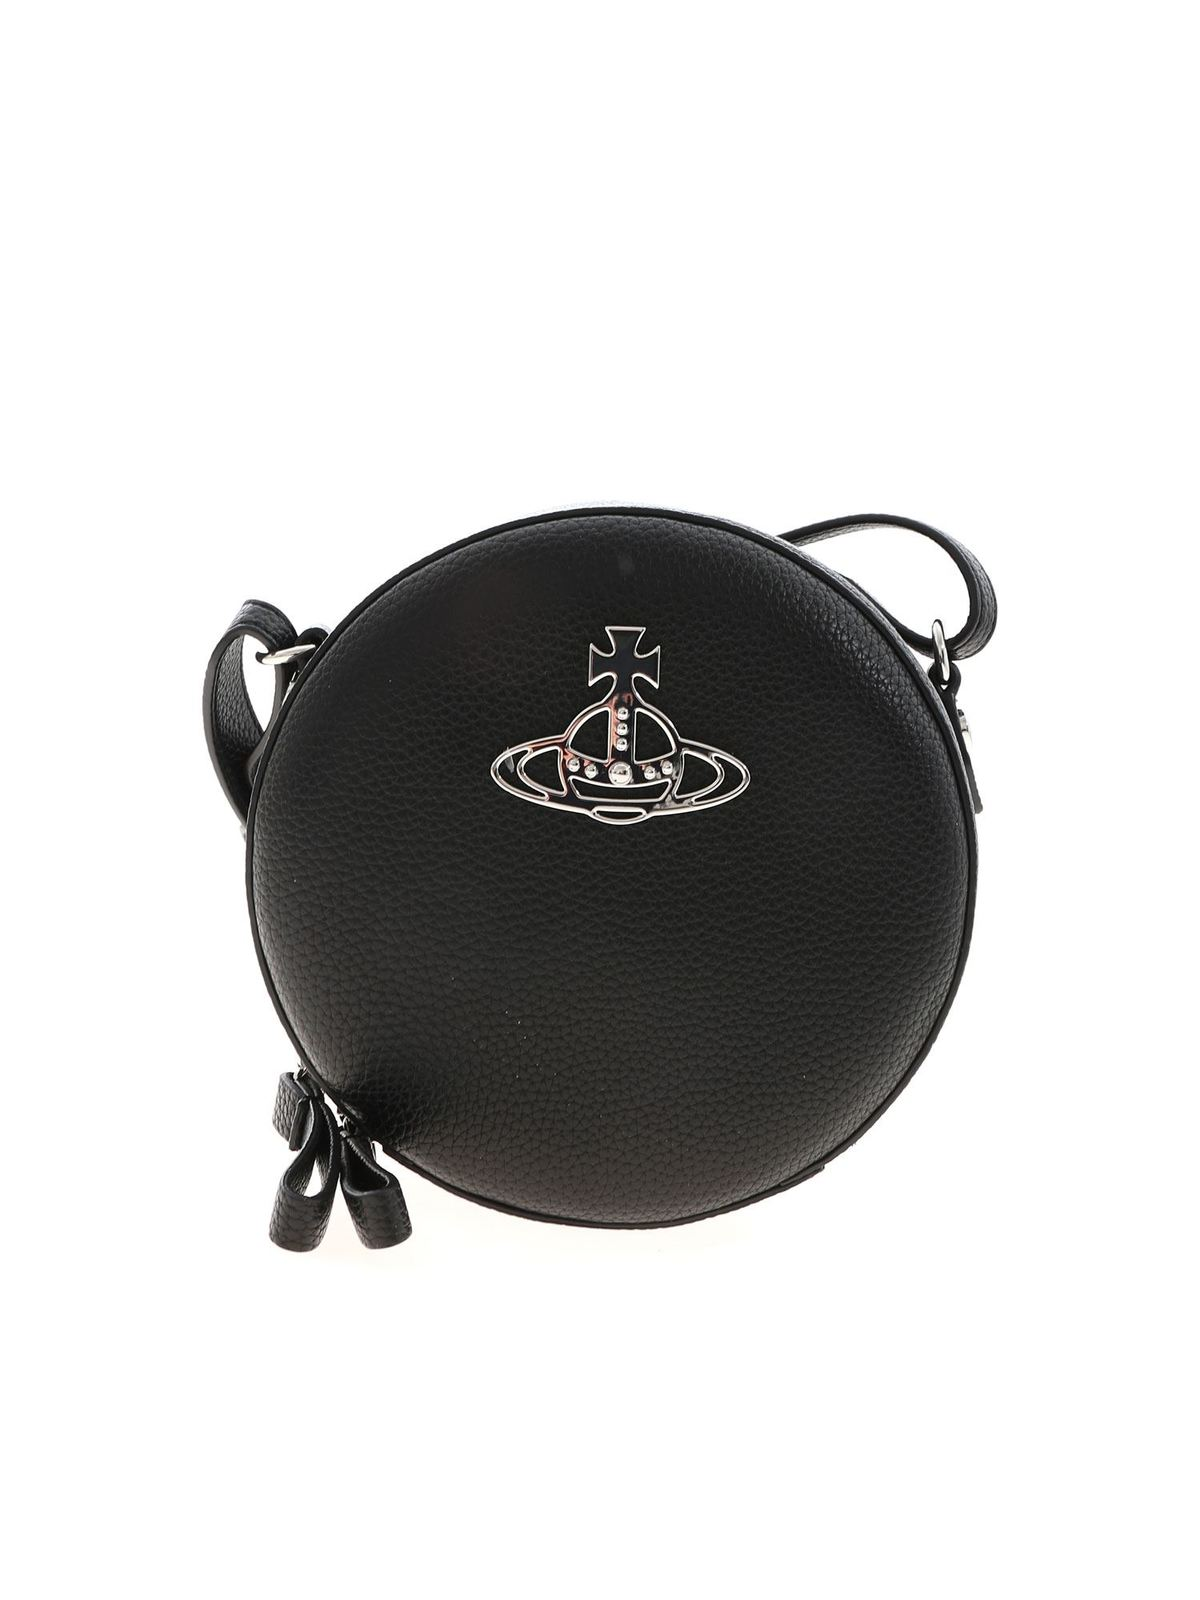 Vivienne Westwood JOHANNA ROUND CROSSBODY BAG IN BLACK